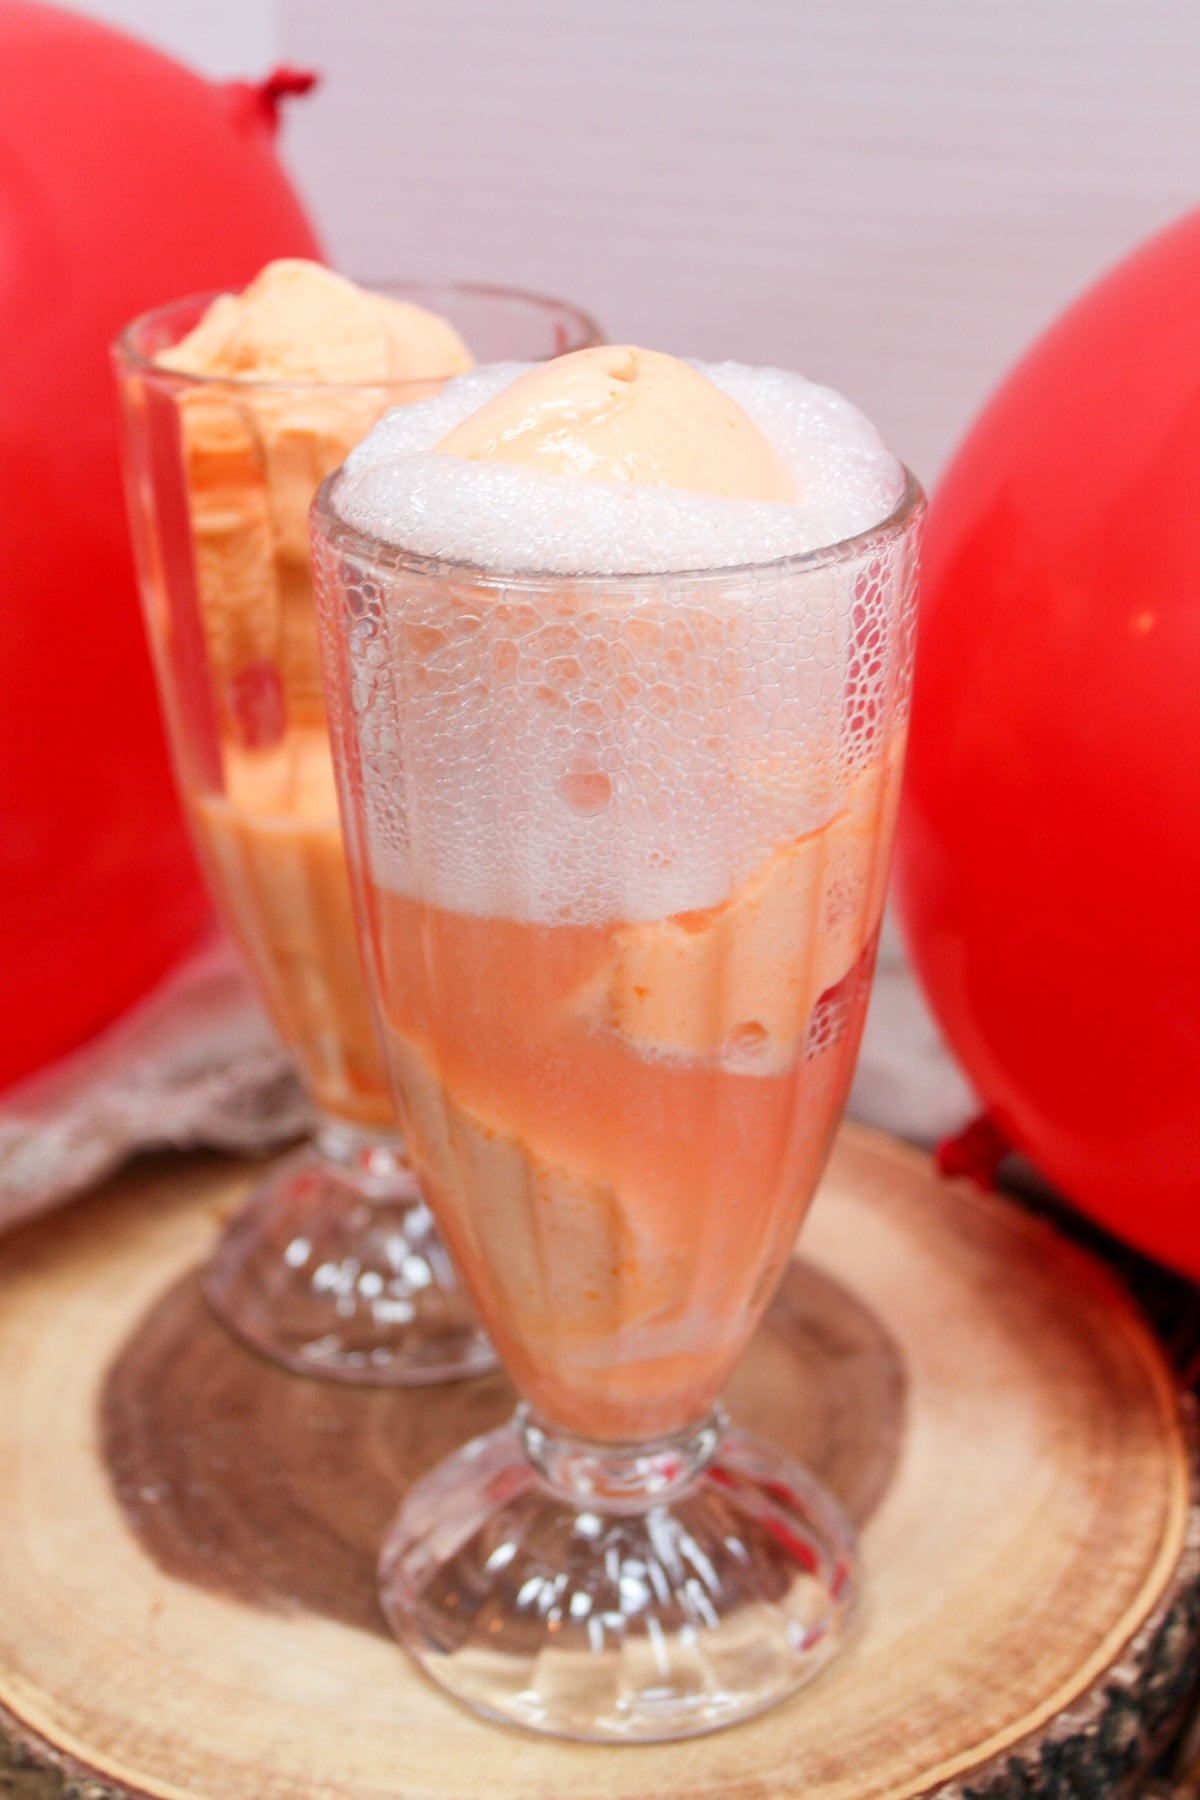 ice cream float in a glass with cherry soda